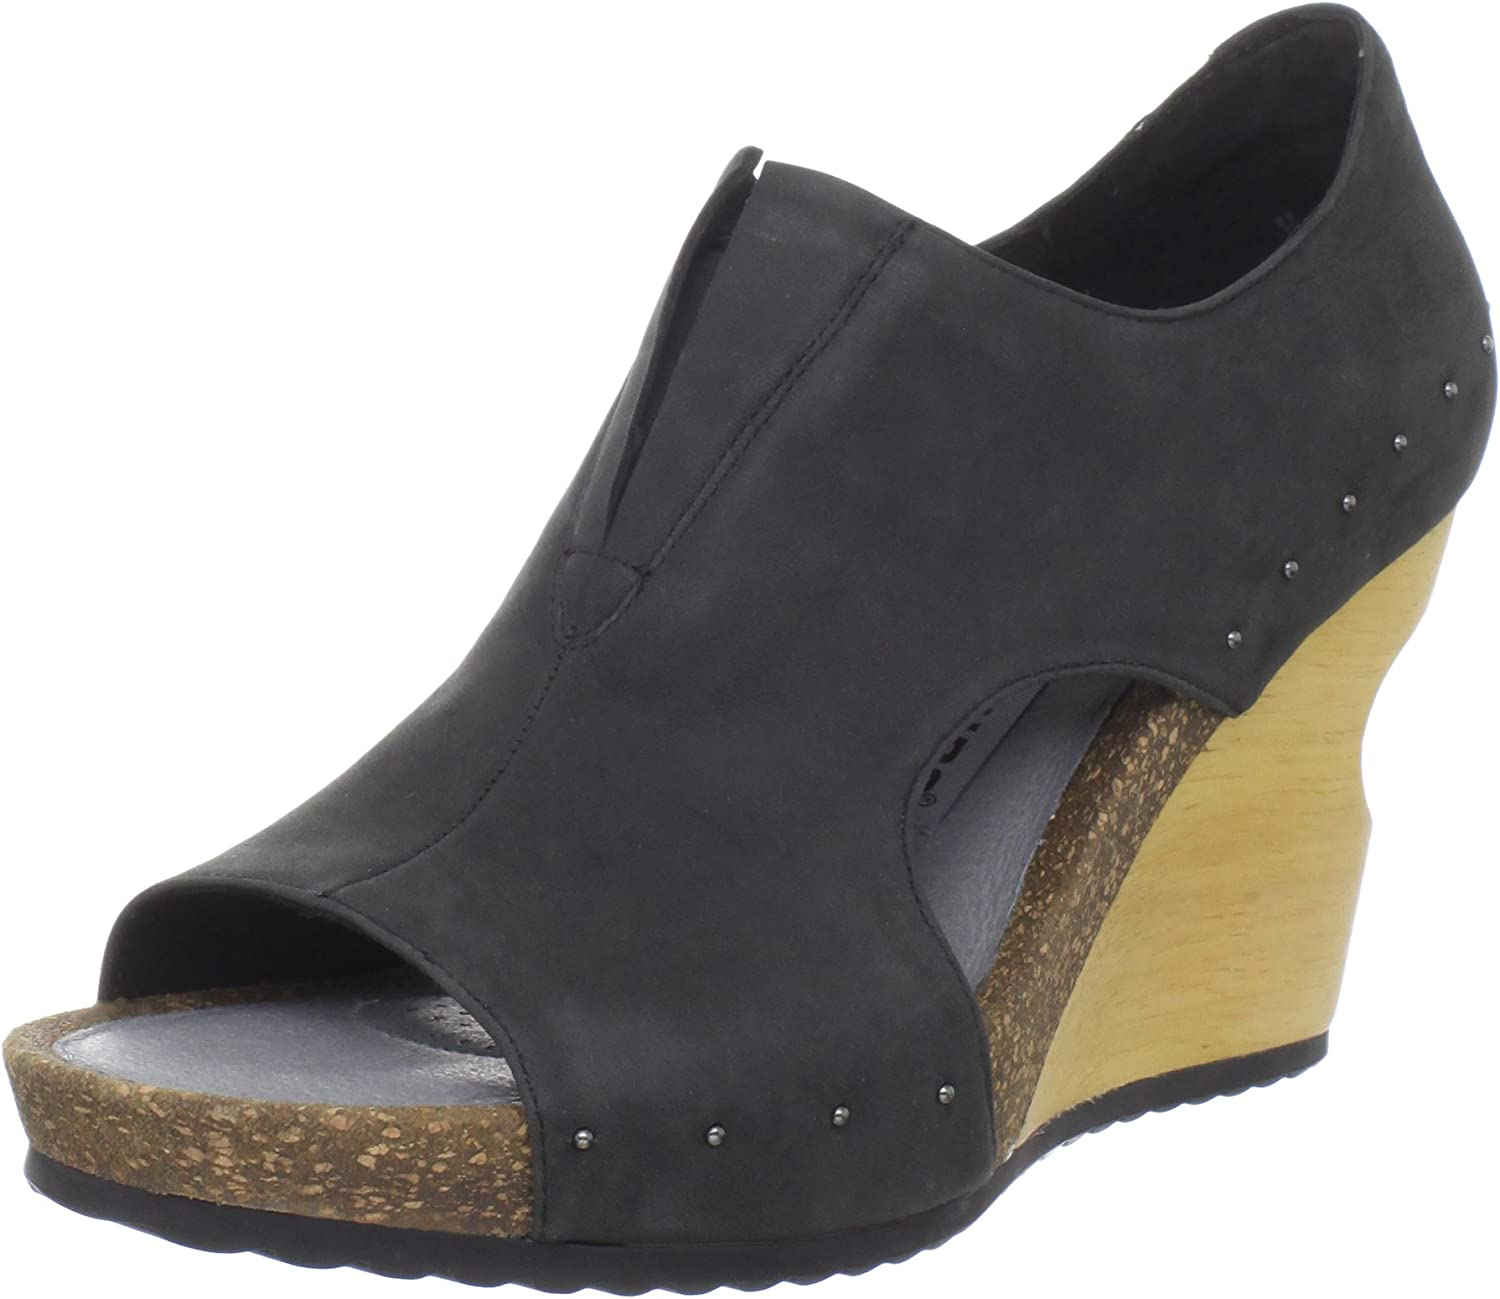 TSUBO Women's Cellini Wedge Sandal